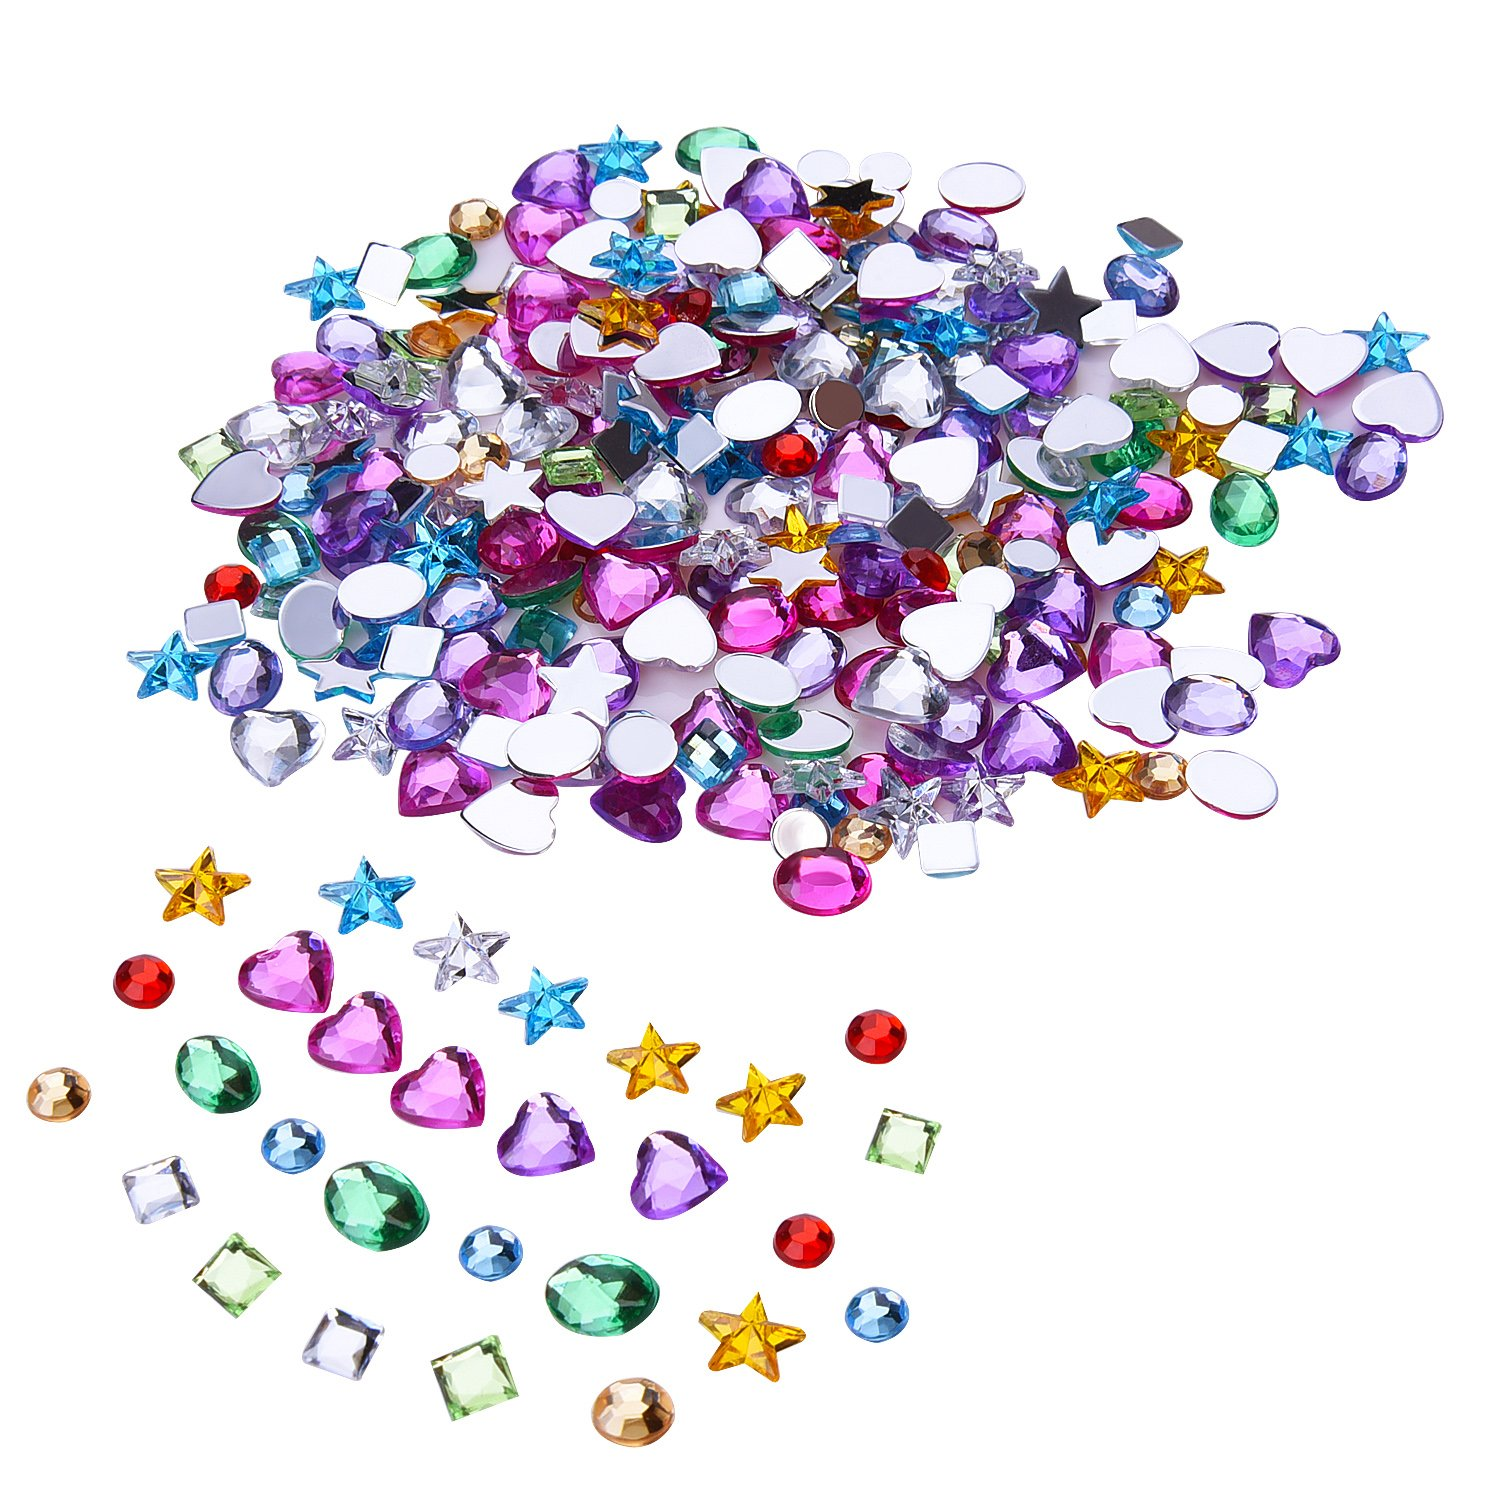 Arts and crafts jewels - Outus 500 Pieces 5 To 8 Mm Acrylic Craft Jewels Gems Gemstone Embellishments Assorted Colors